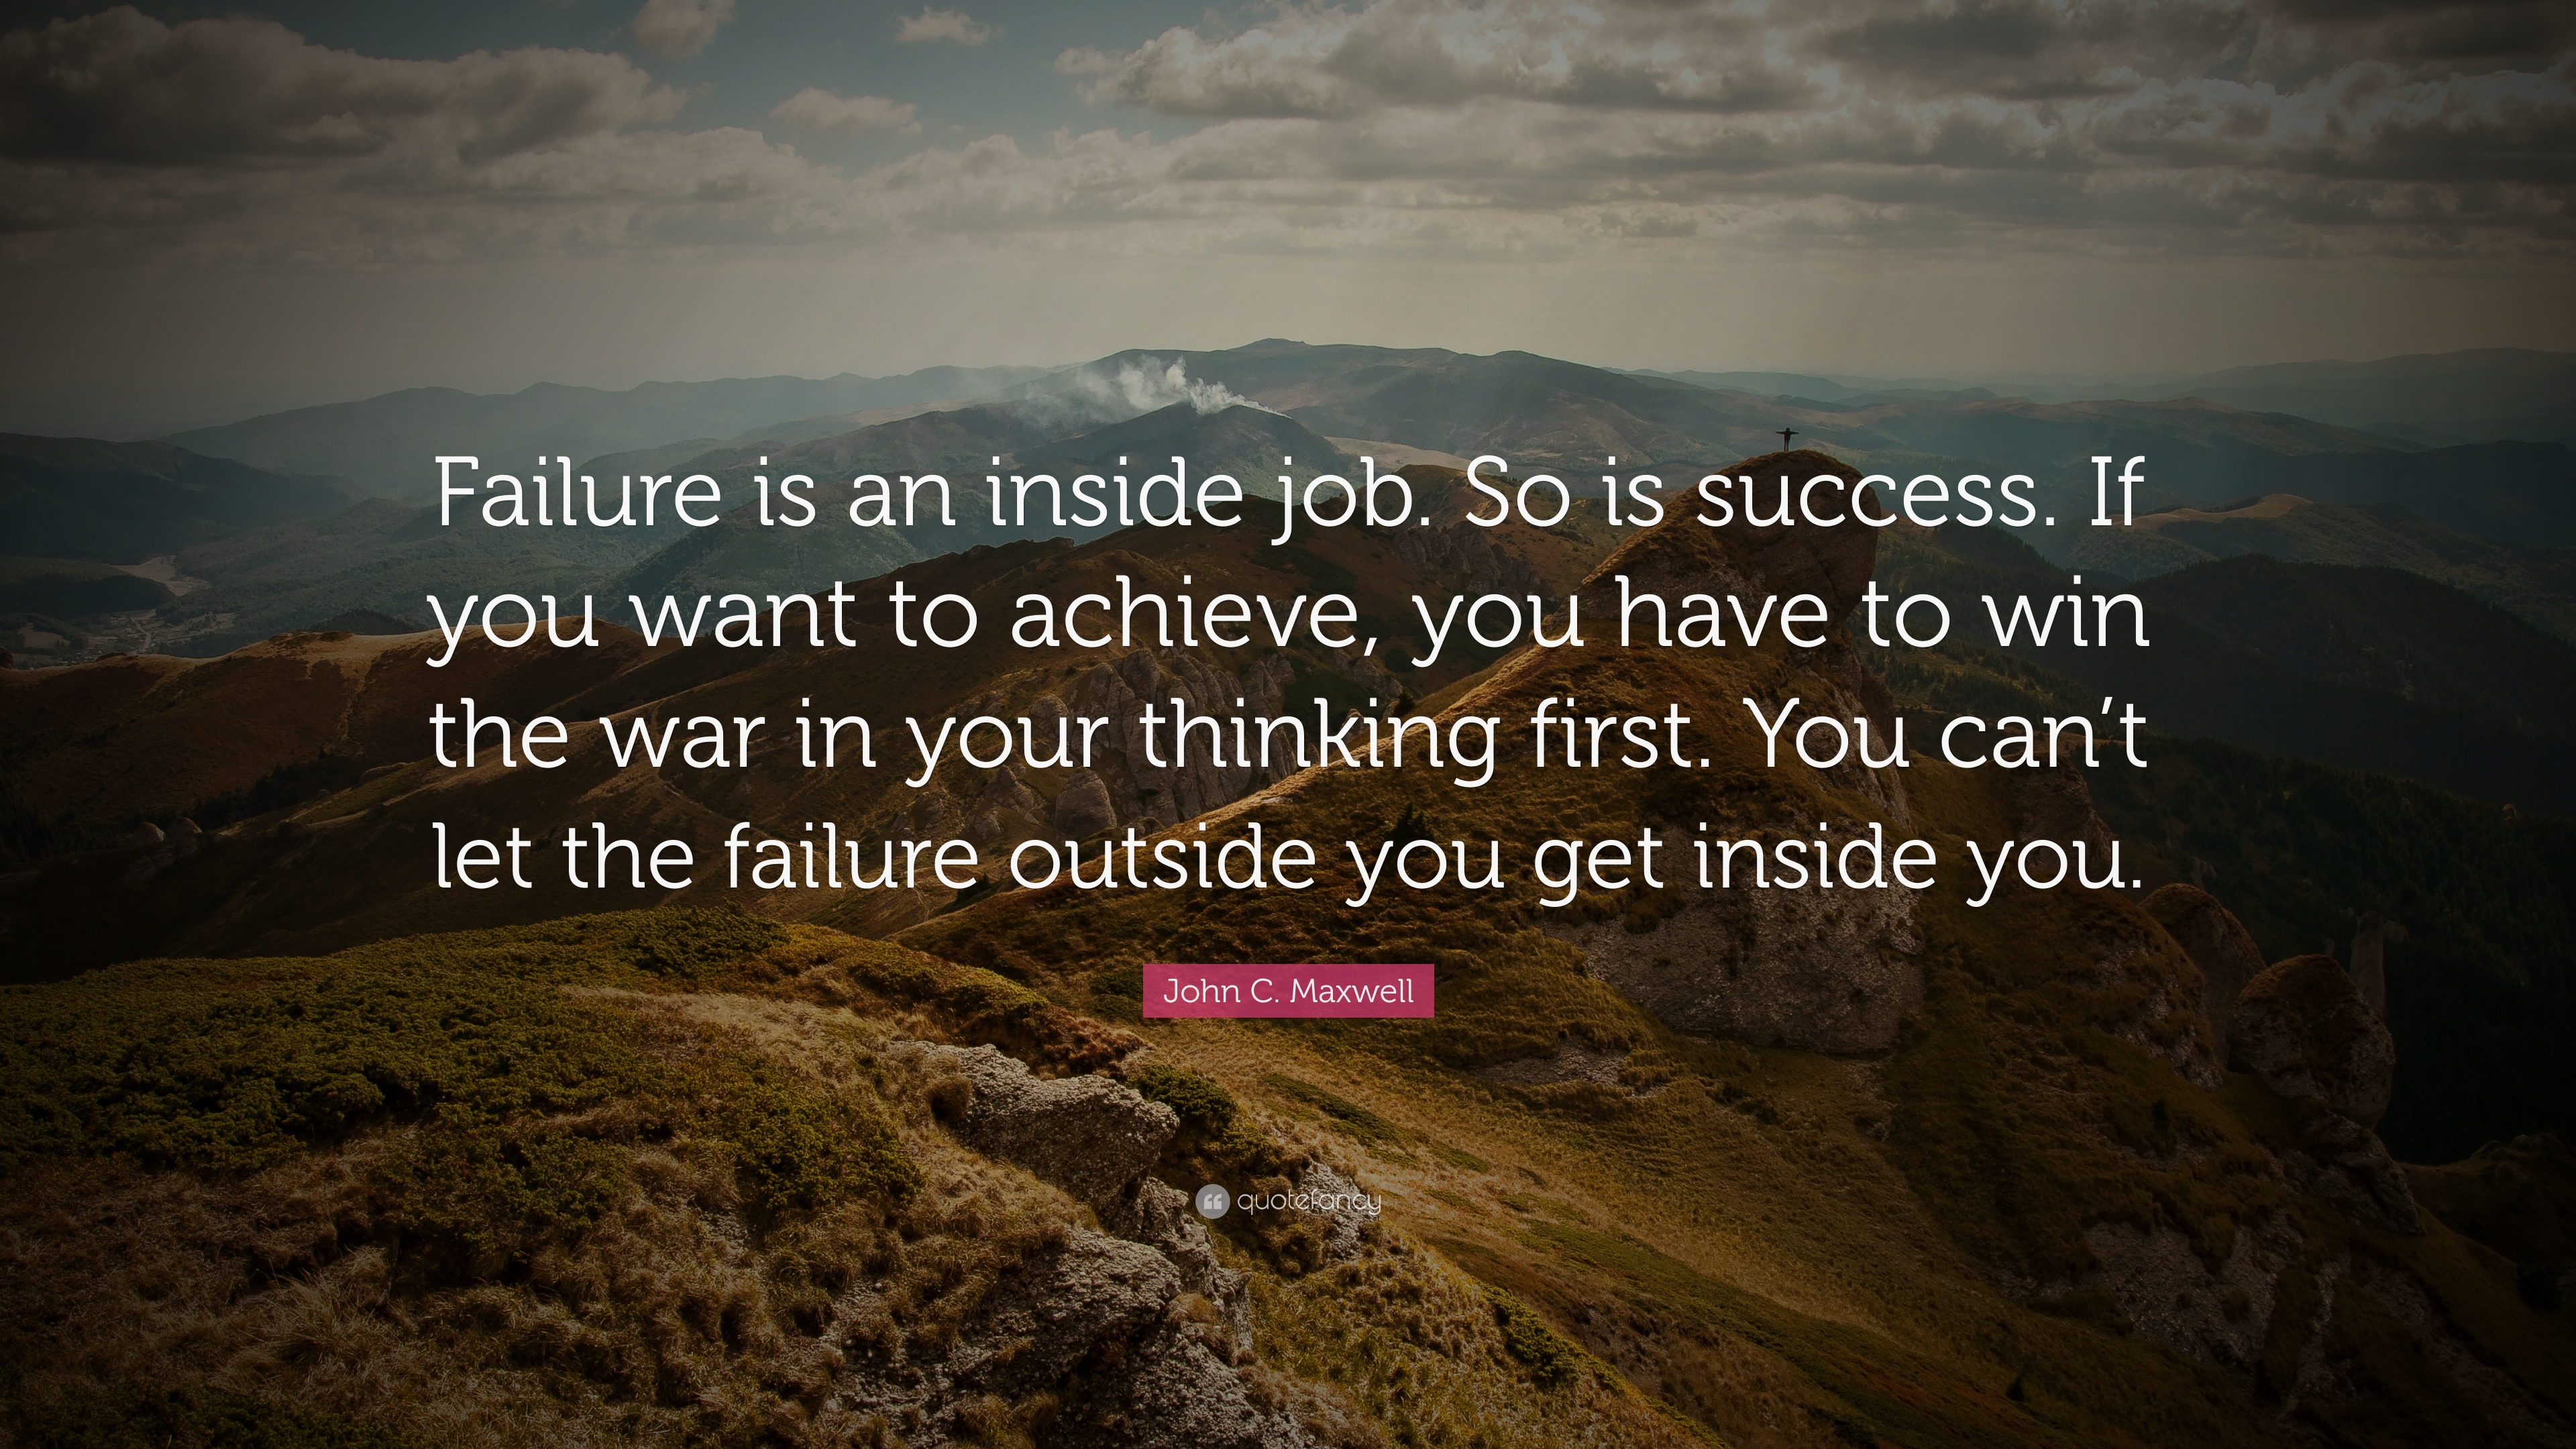 John C Maxwell Quote Failure Is An Inside Job So Is Success If